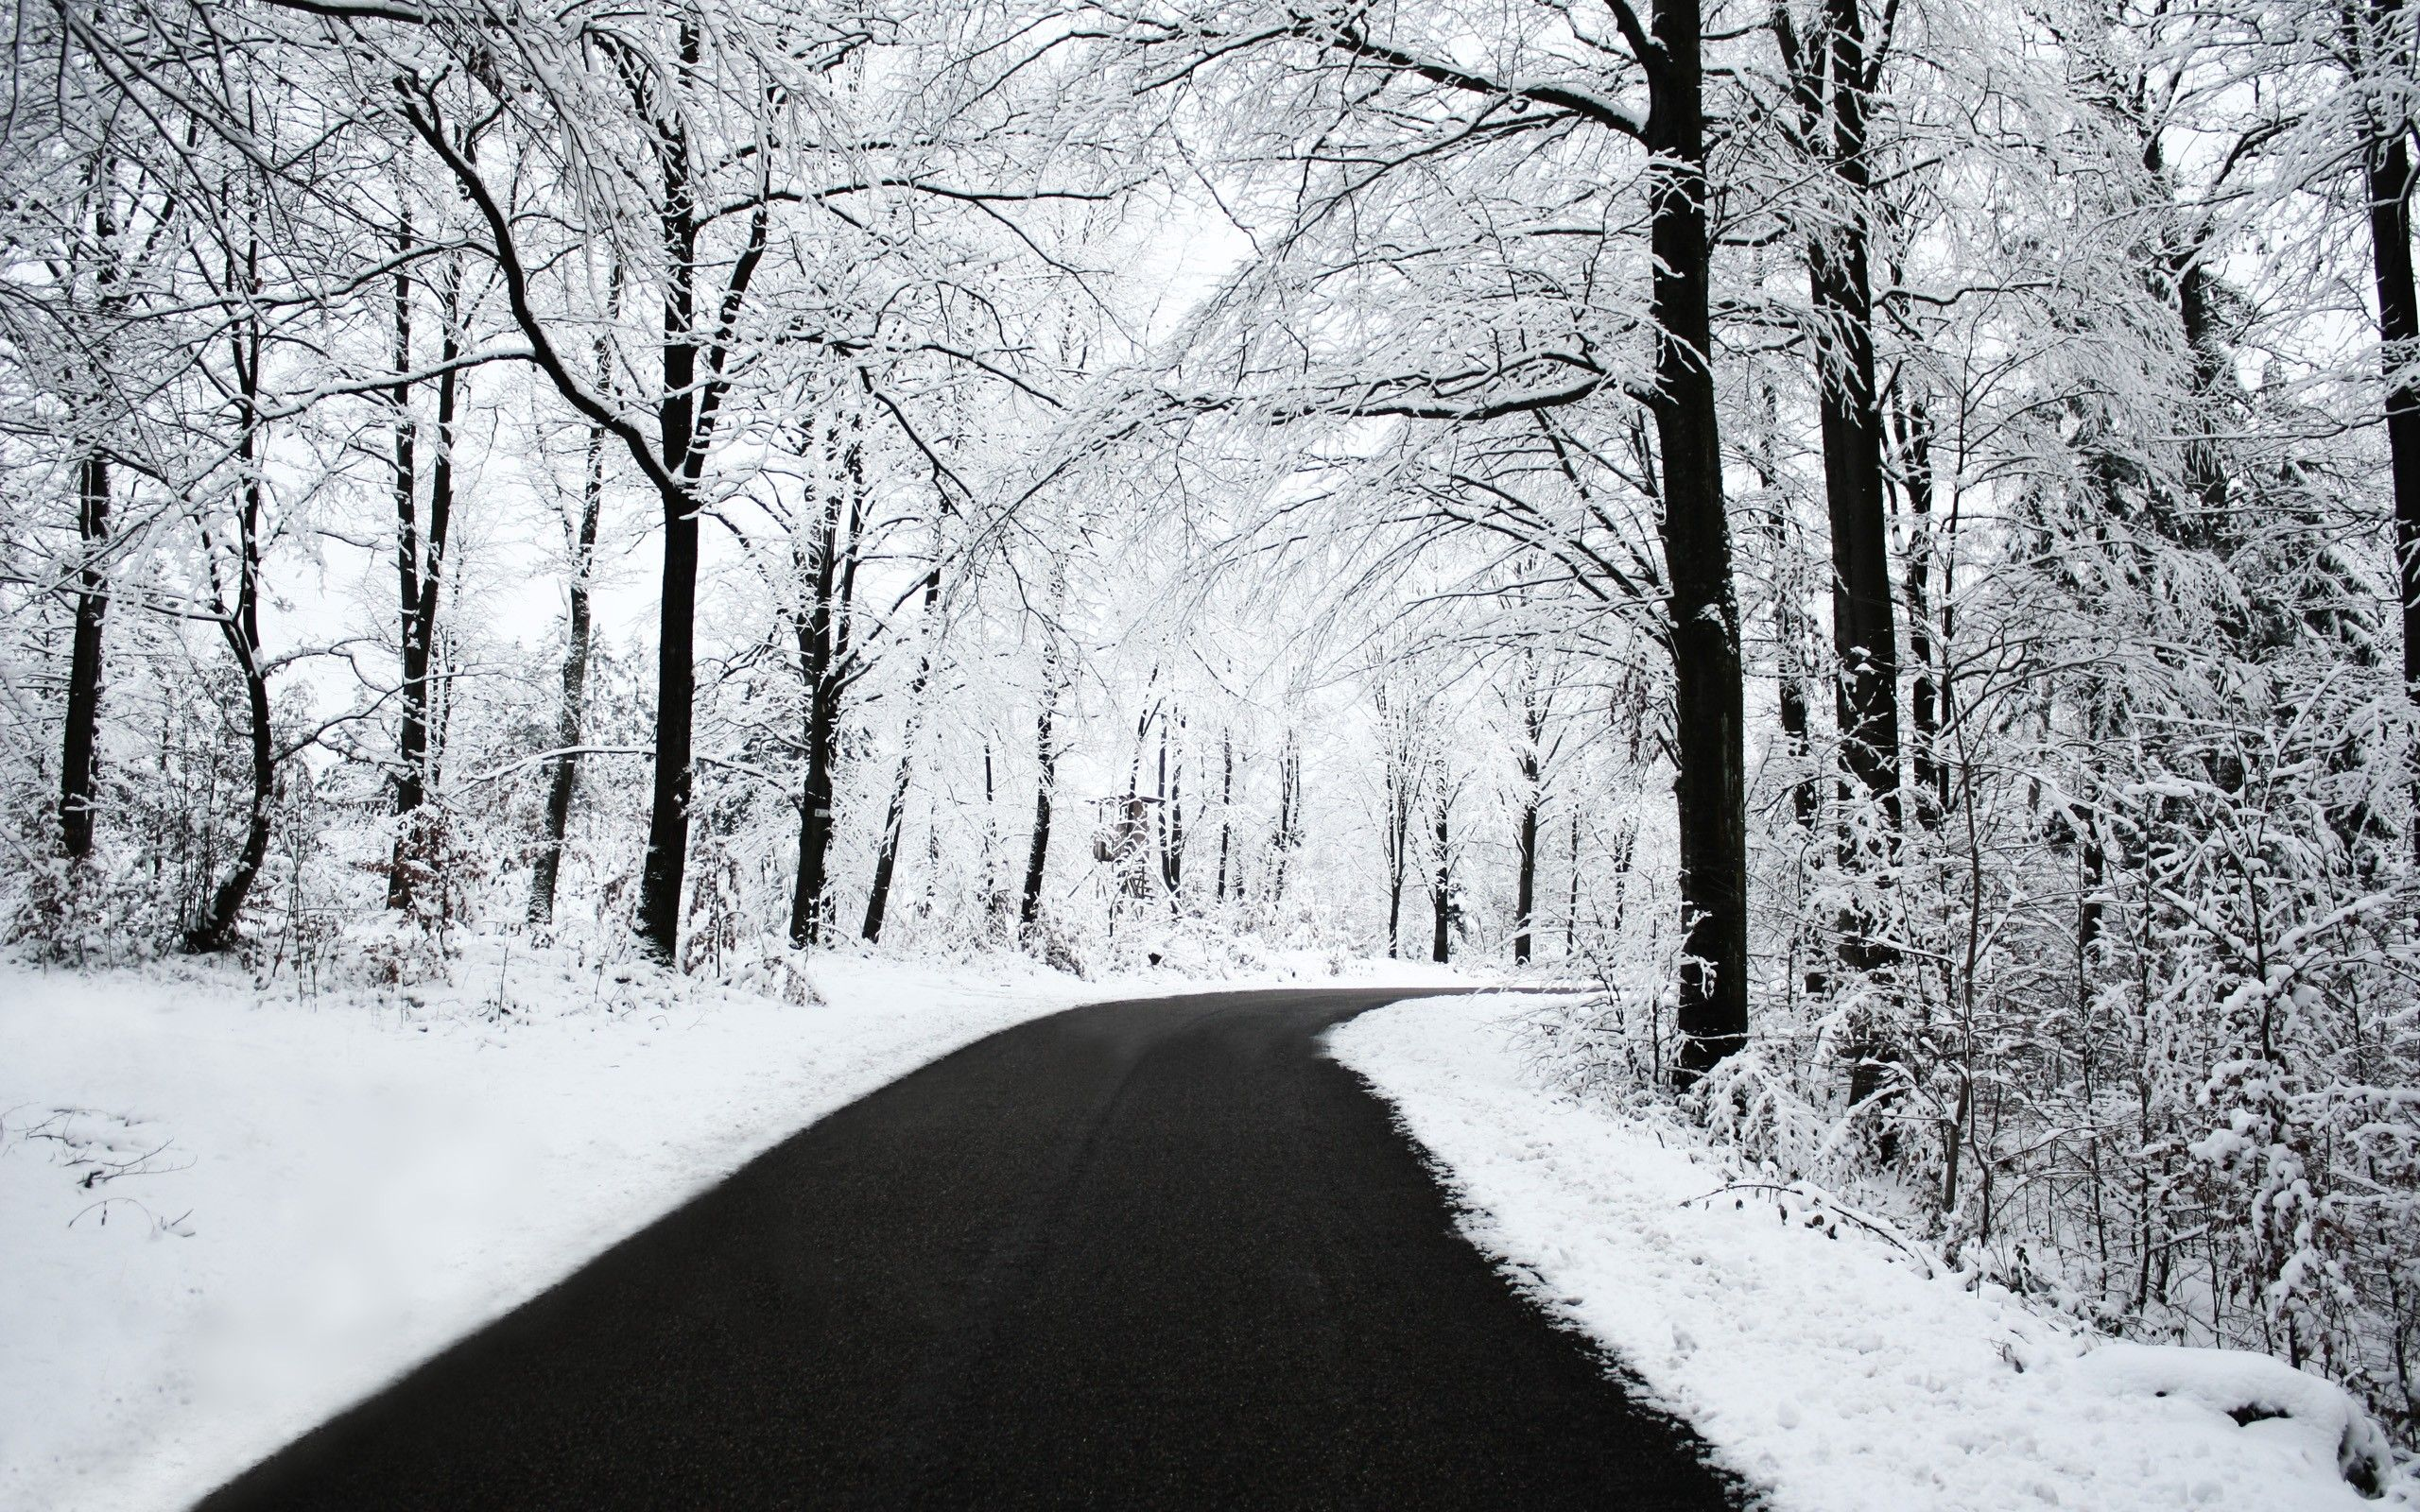 Trees Forest Road Black Snow White Nature Winter